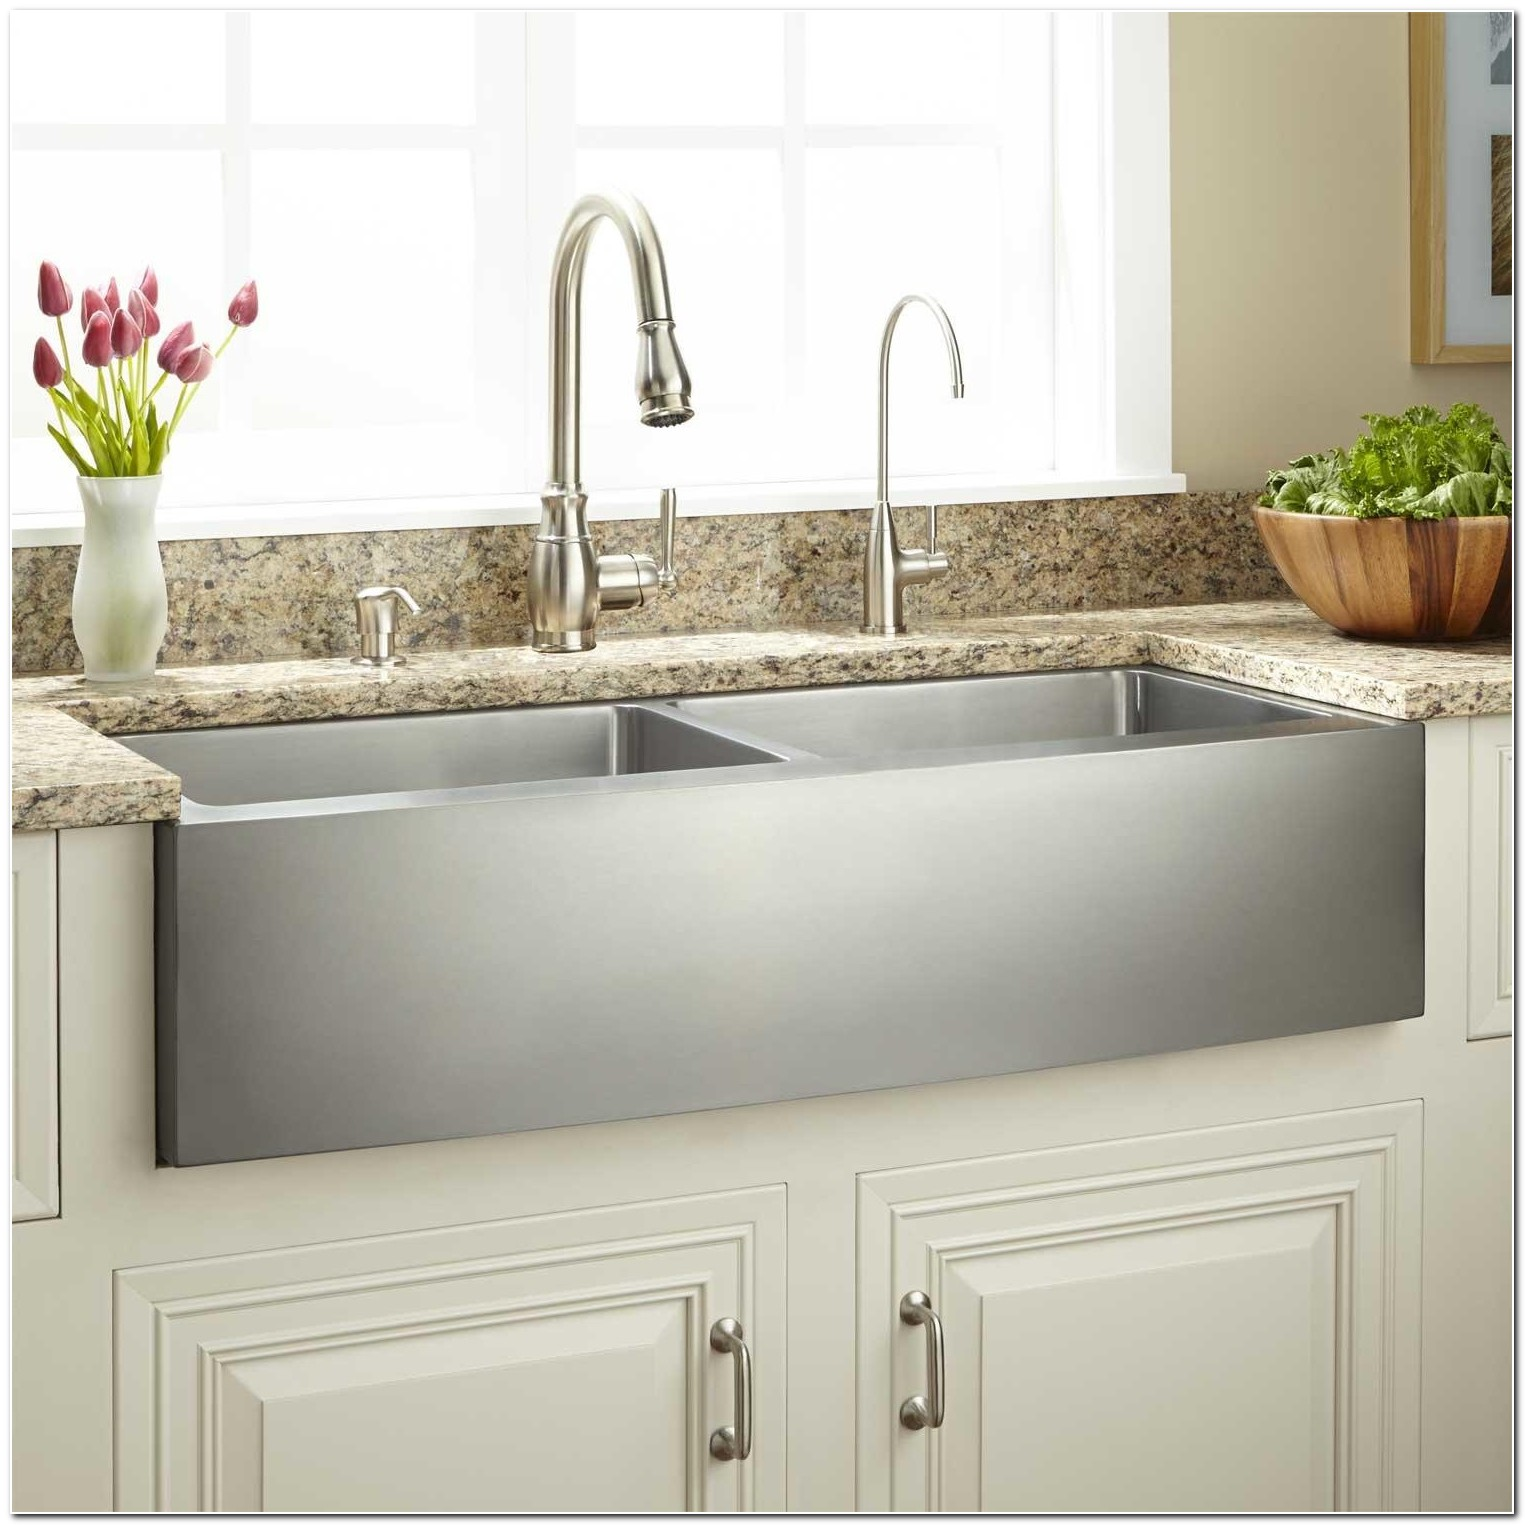 Apron Front Farmhouse Sink Stainless Steel